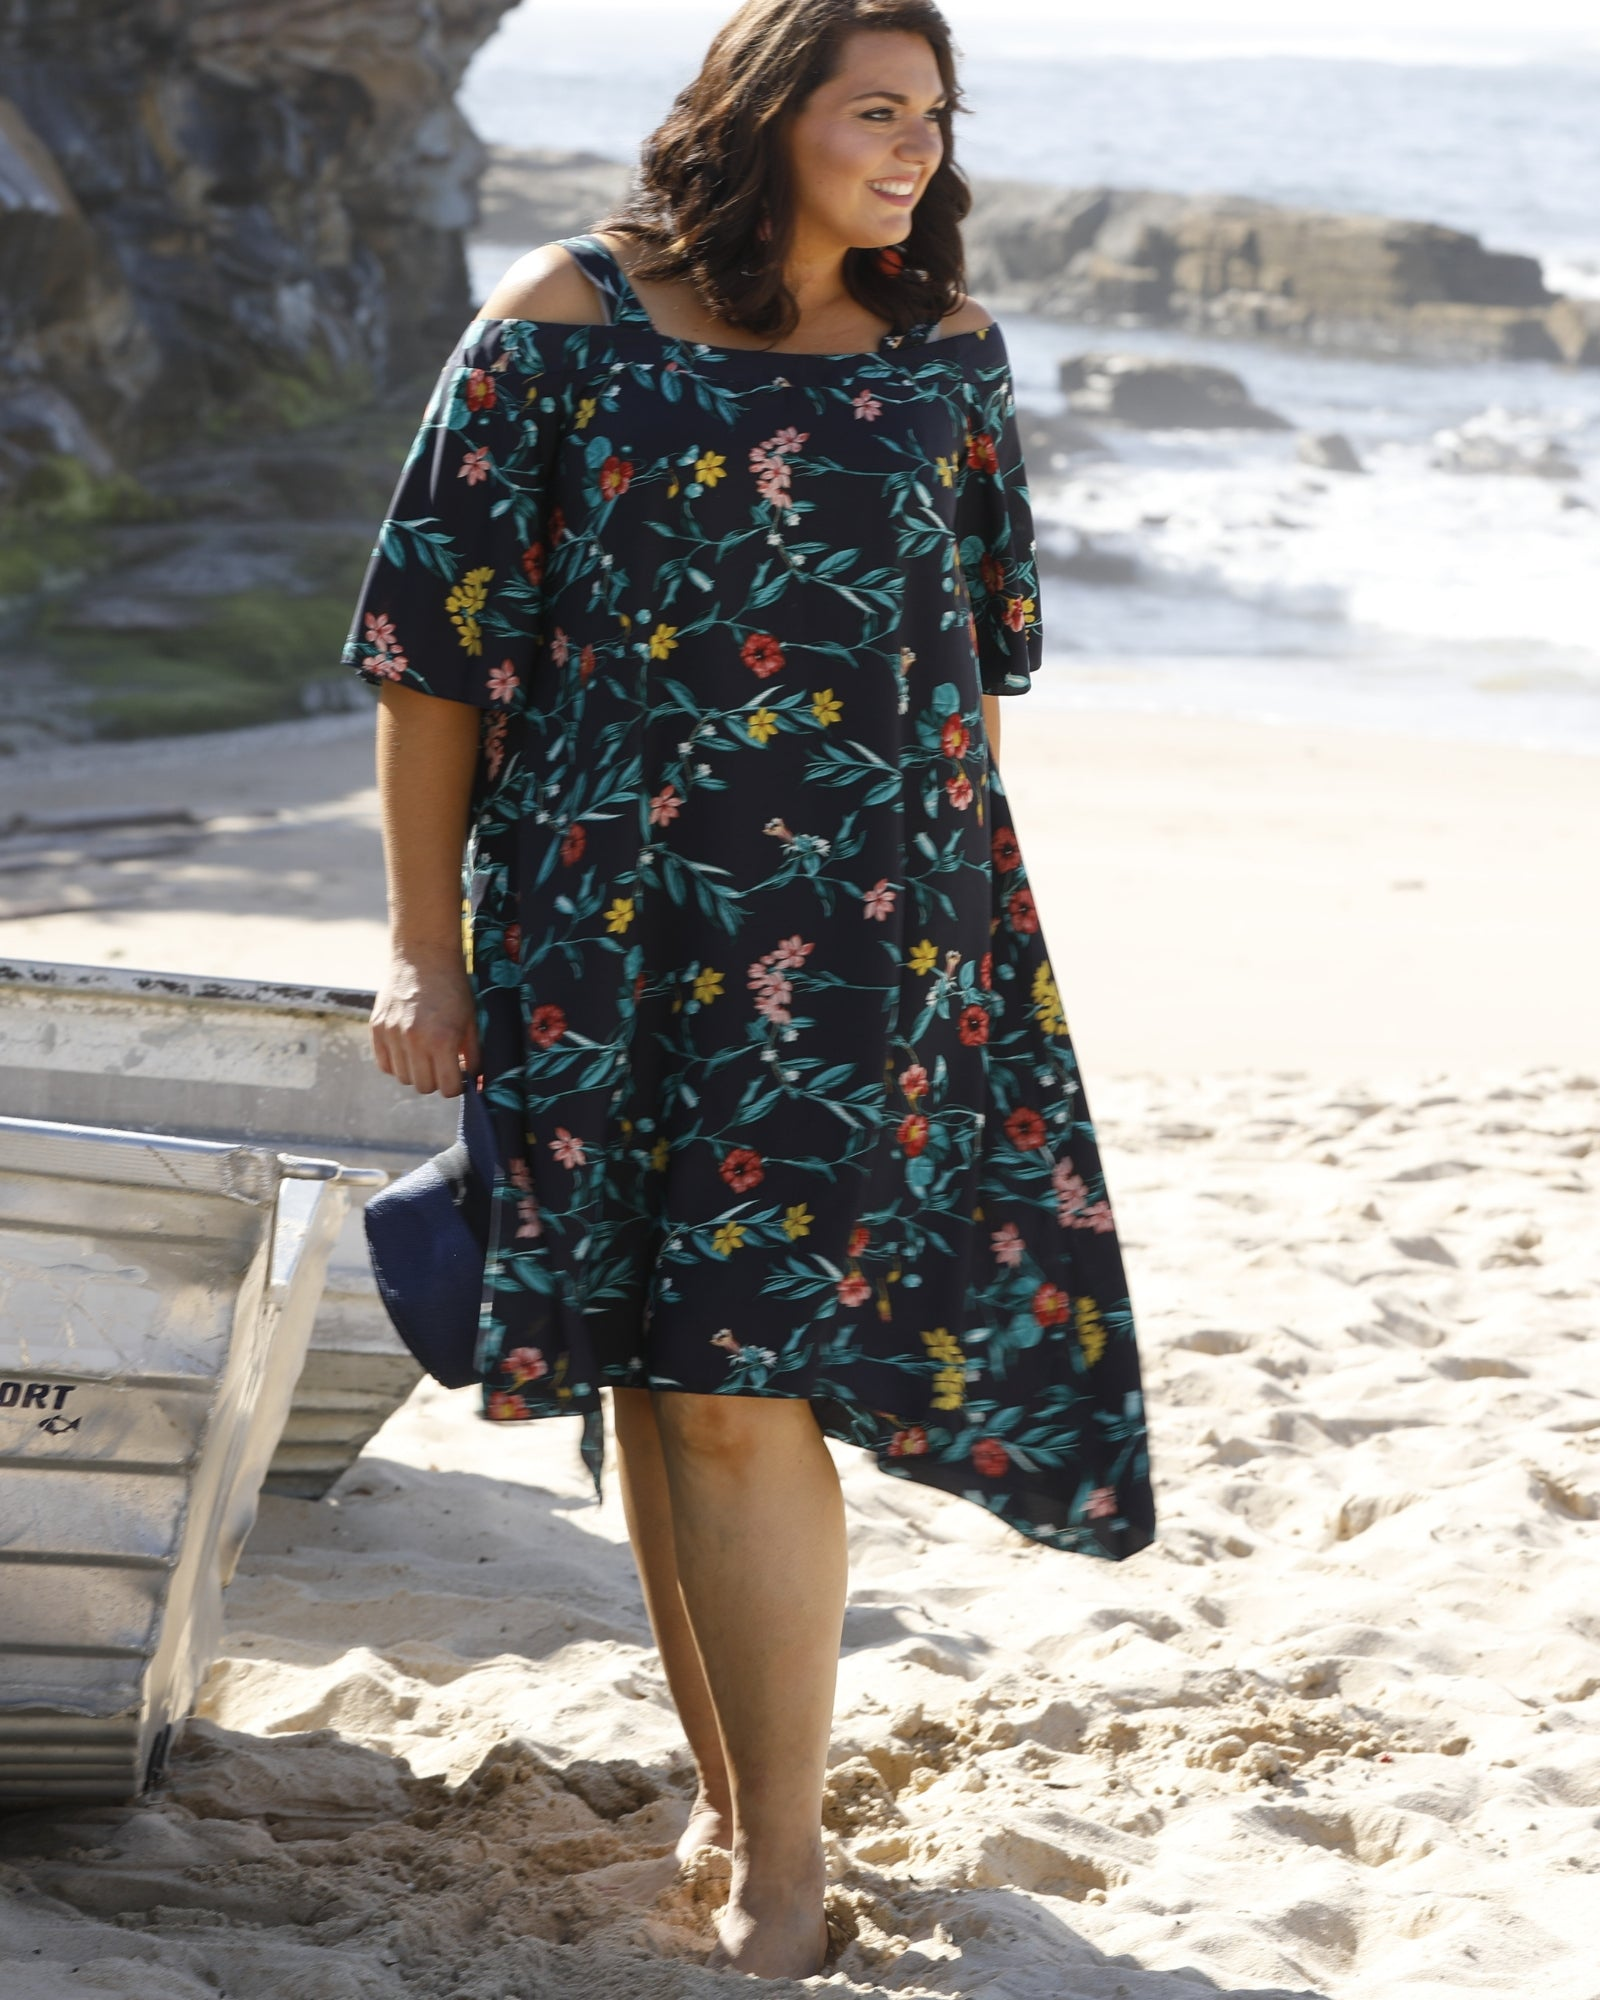 Allison Slip On Dress - Floral